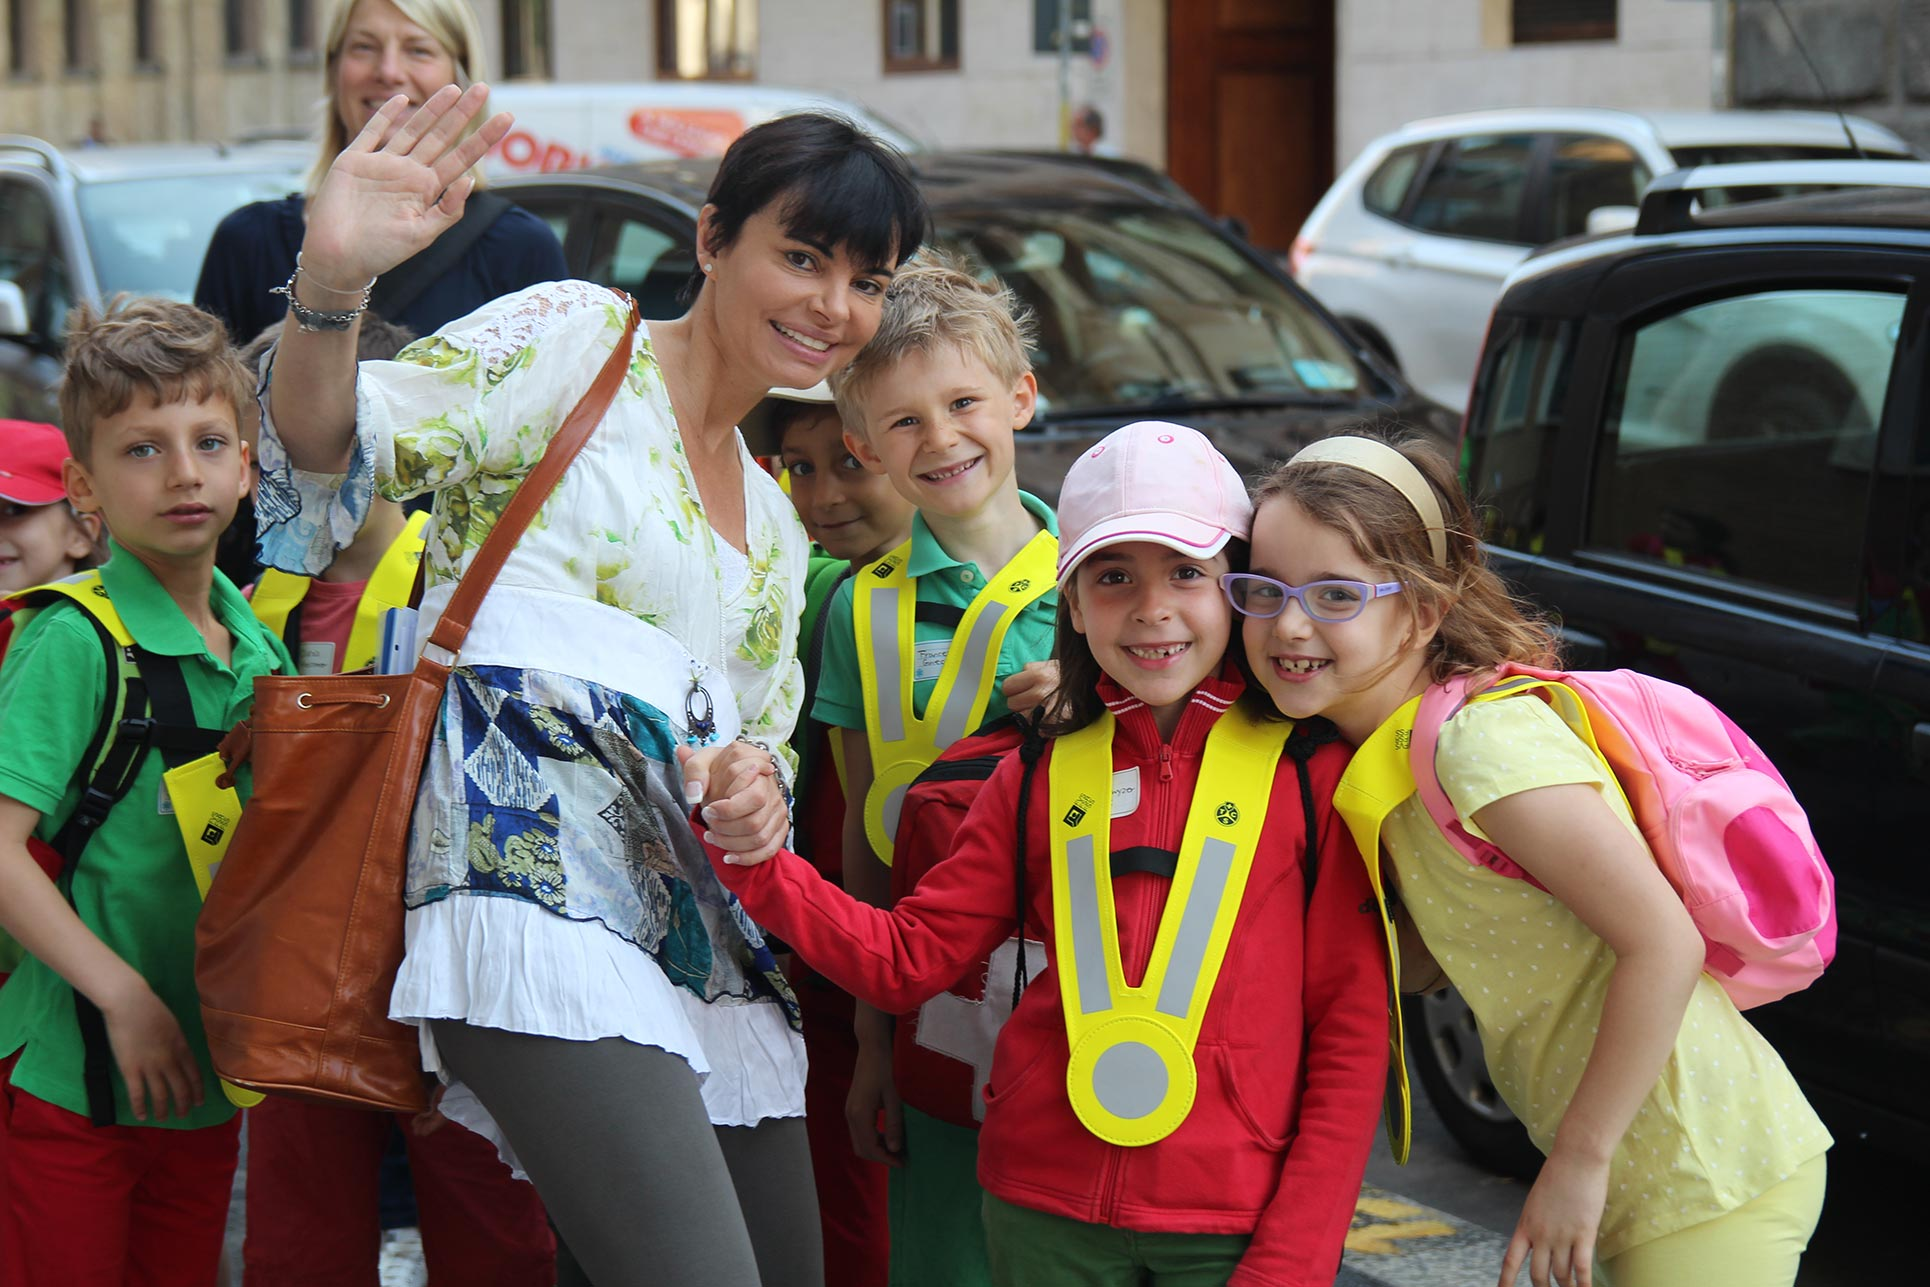 The elementary school on their way to Expo 2015 (Photo: Barbara Fässler)